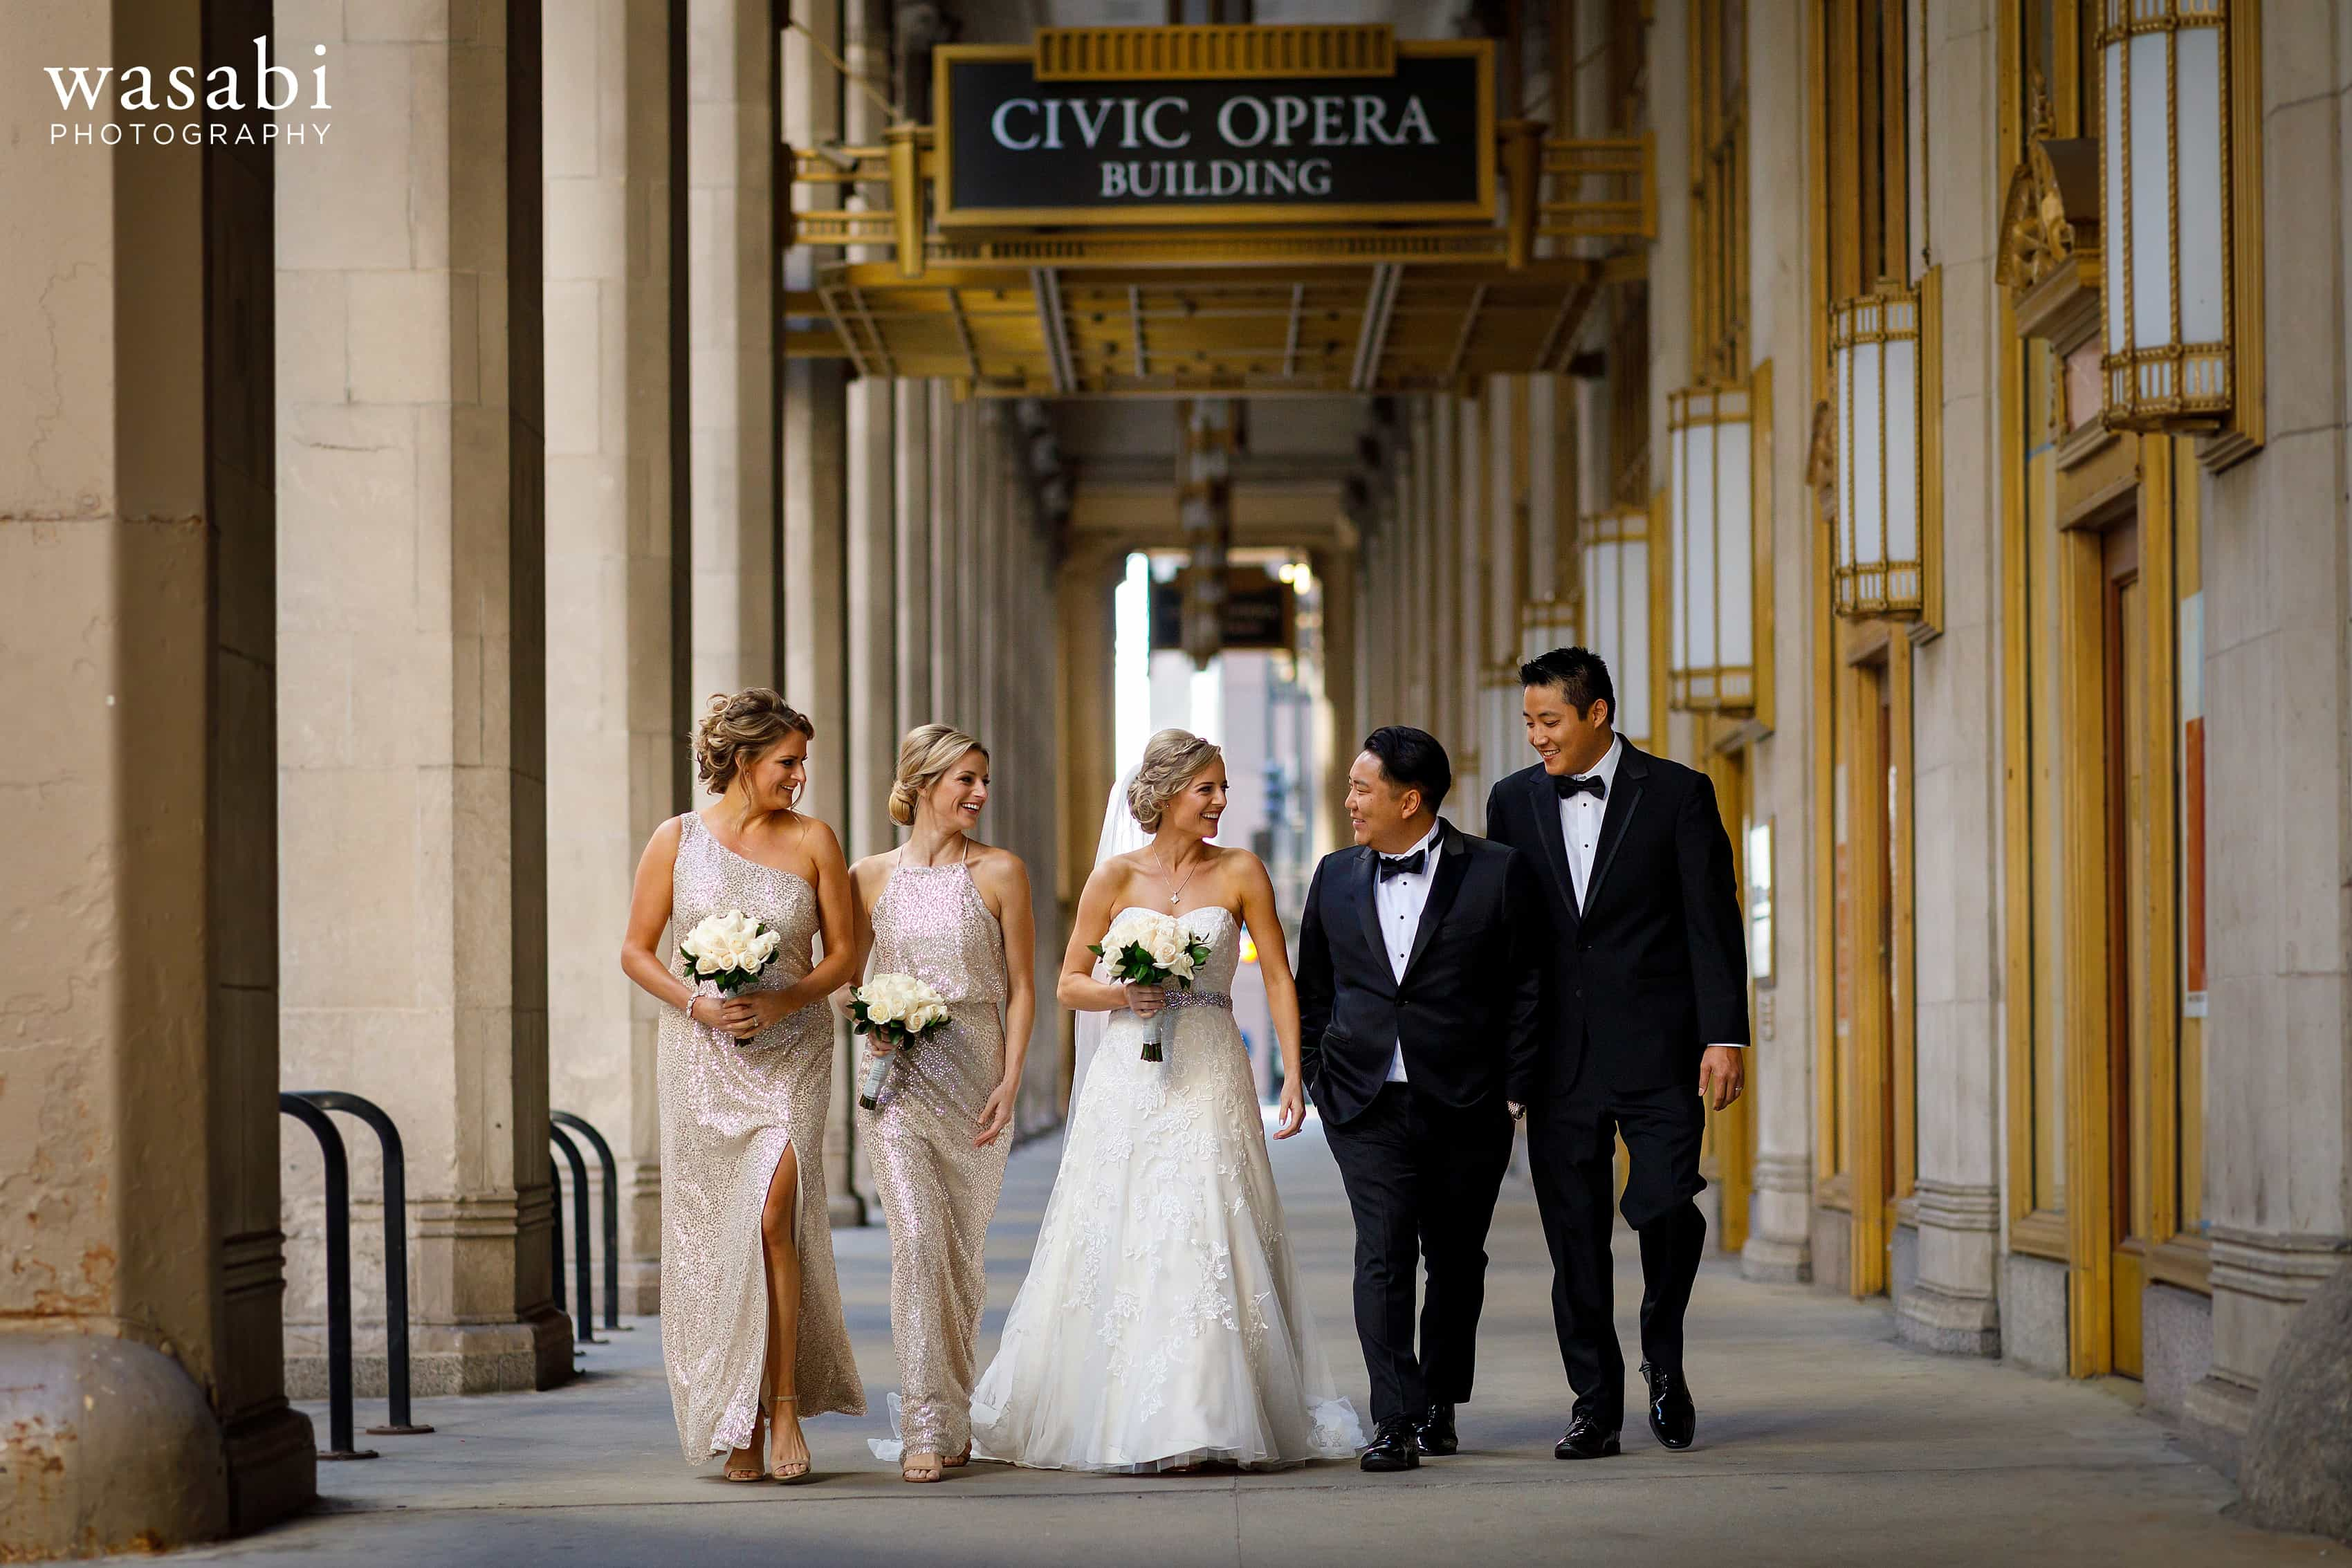 wedding party laughs while walking under overhang at Civic Opera House in Chicago